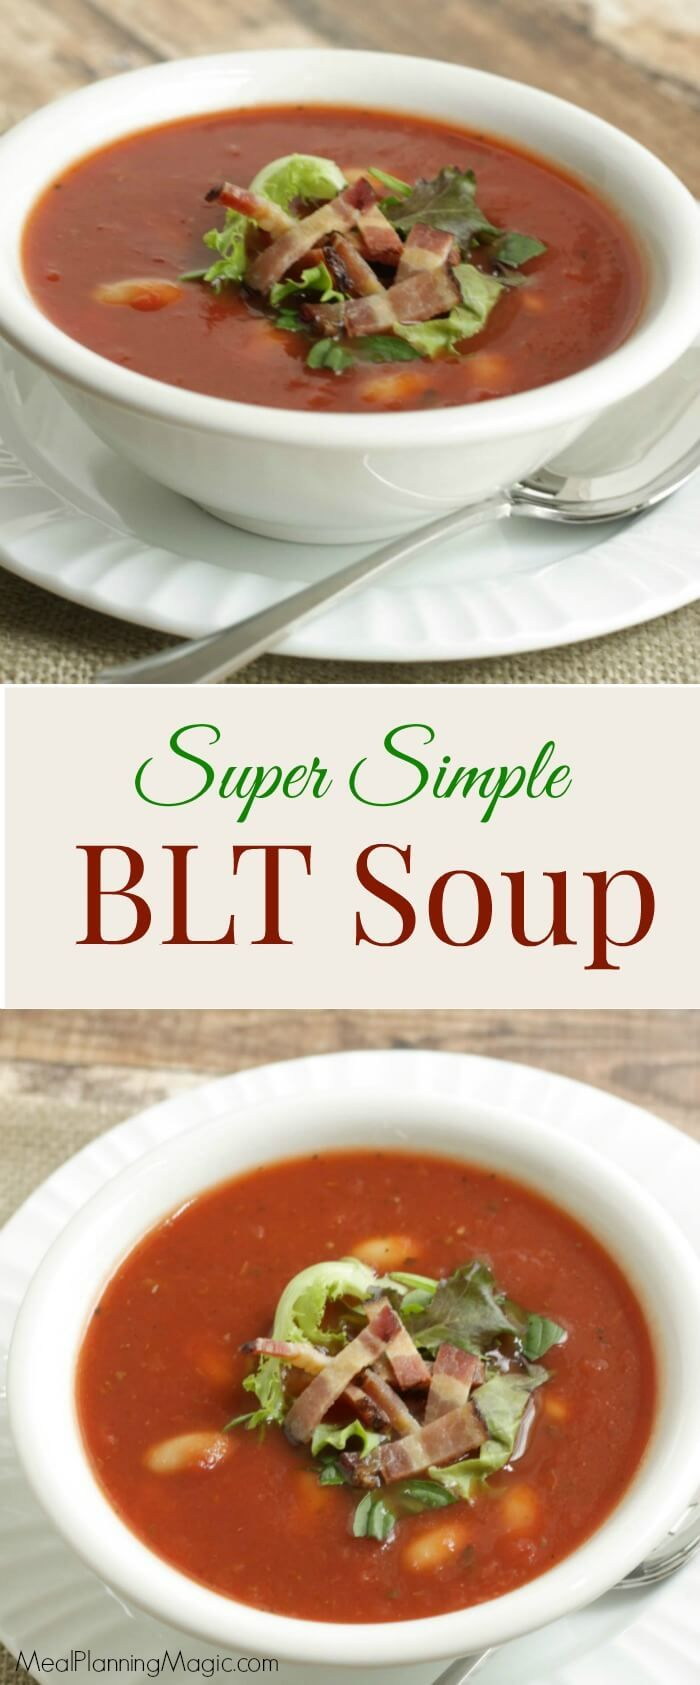 Bacon, lettuce, tomato and cannellini beans come together for this BLT Soup for a unique twist on this classic flavor combination in this super simple soup recipe.